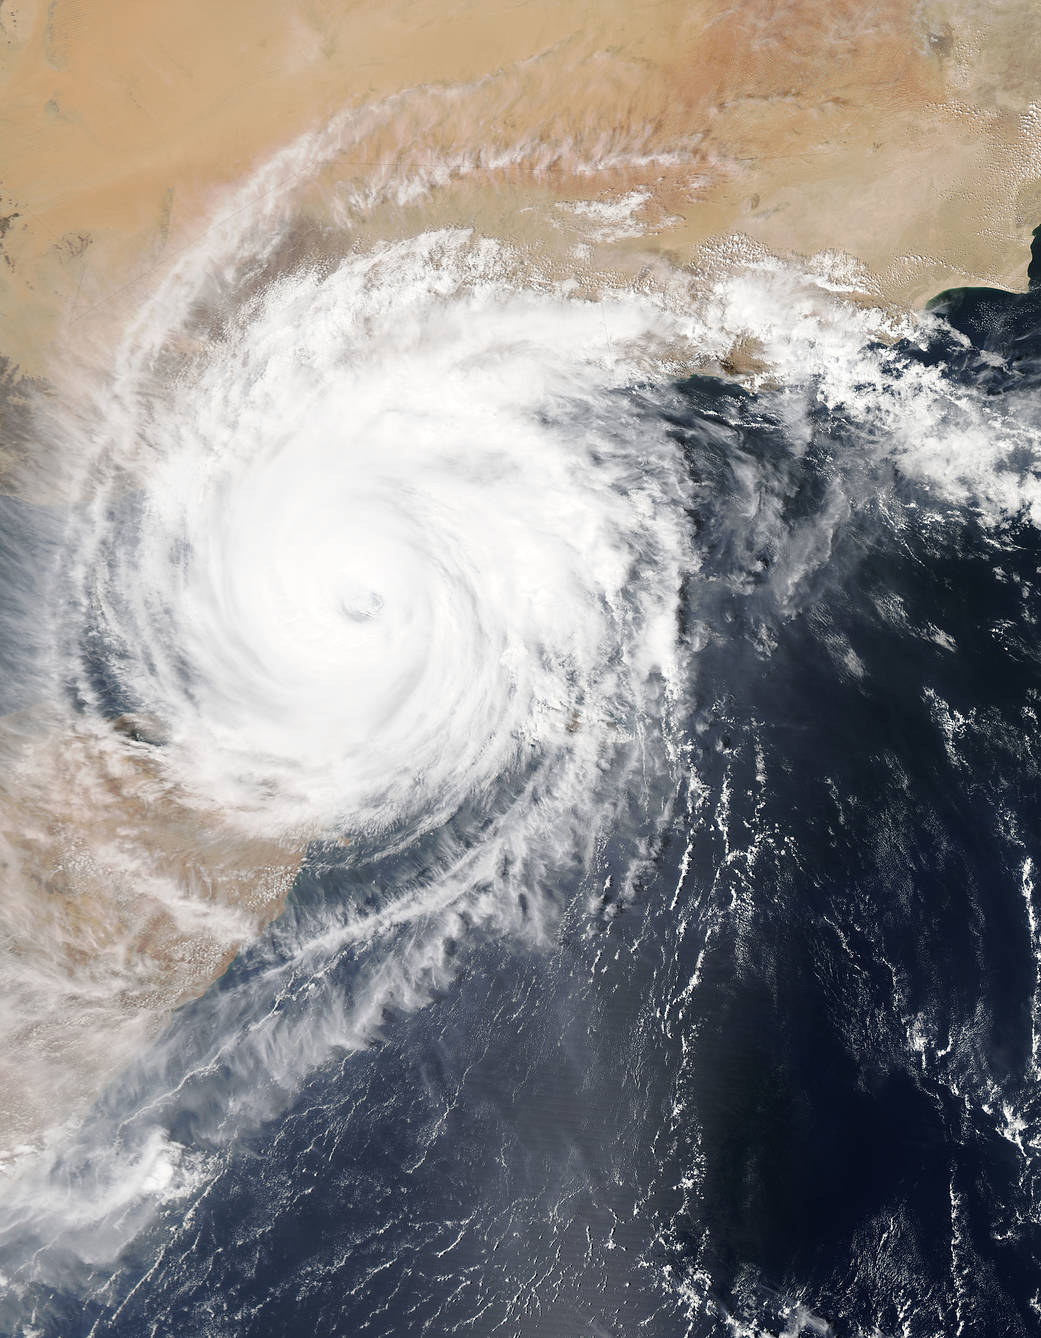 Tropical Cyclone Chapala made landfall on mainland Yemen early on November 3, 2015, dumping torrential rains.